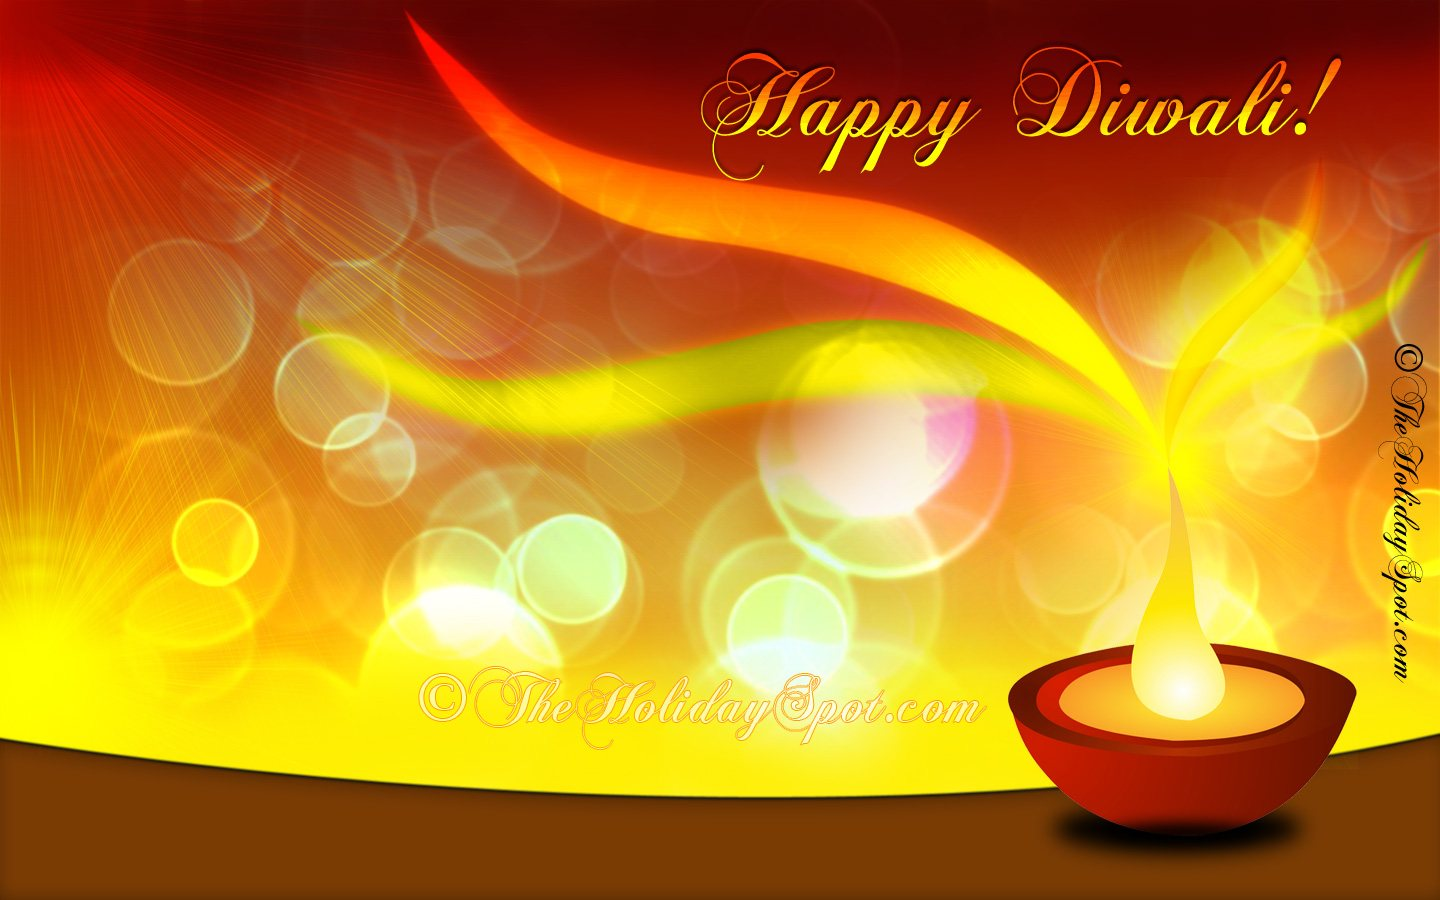 Diwali Wallpapers Colorful Wallpapers Seasonal Wallpapers